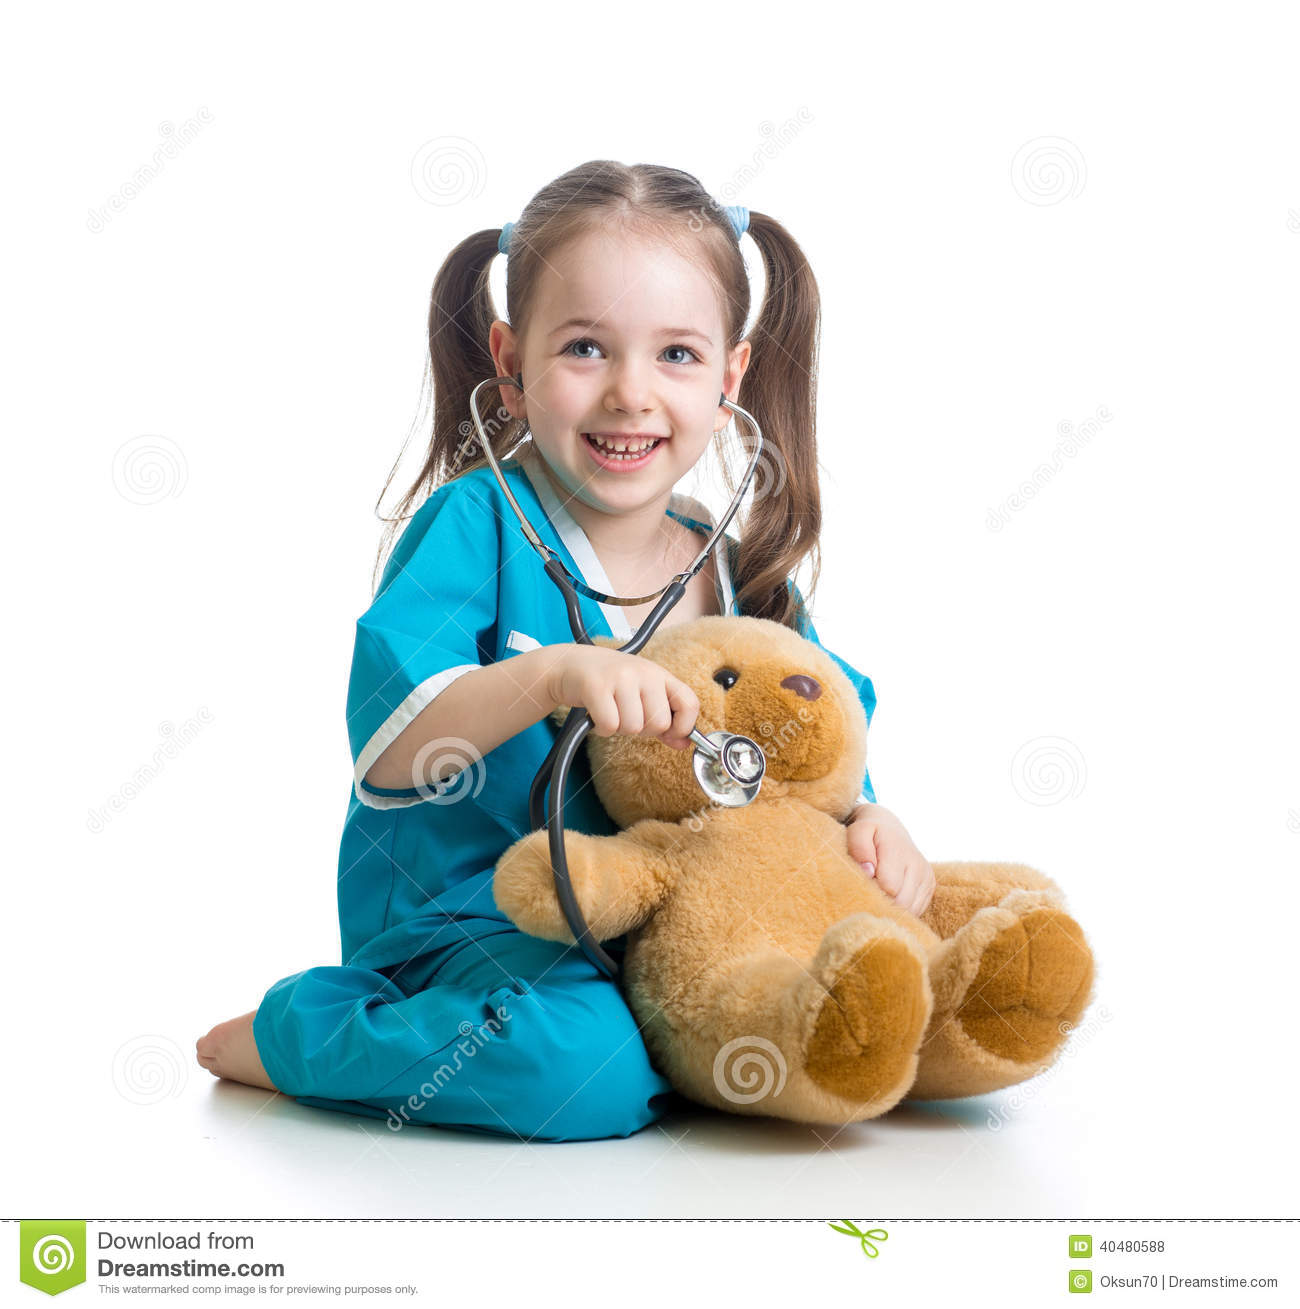 child with clothes of doctor examining teddy bear stock photo image 40480588. Black Bedroom Furniture Sets. Home Design Ideas